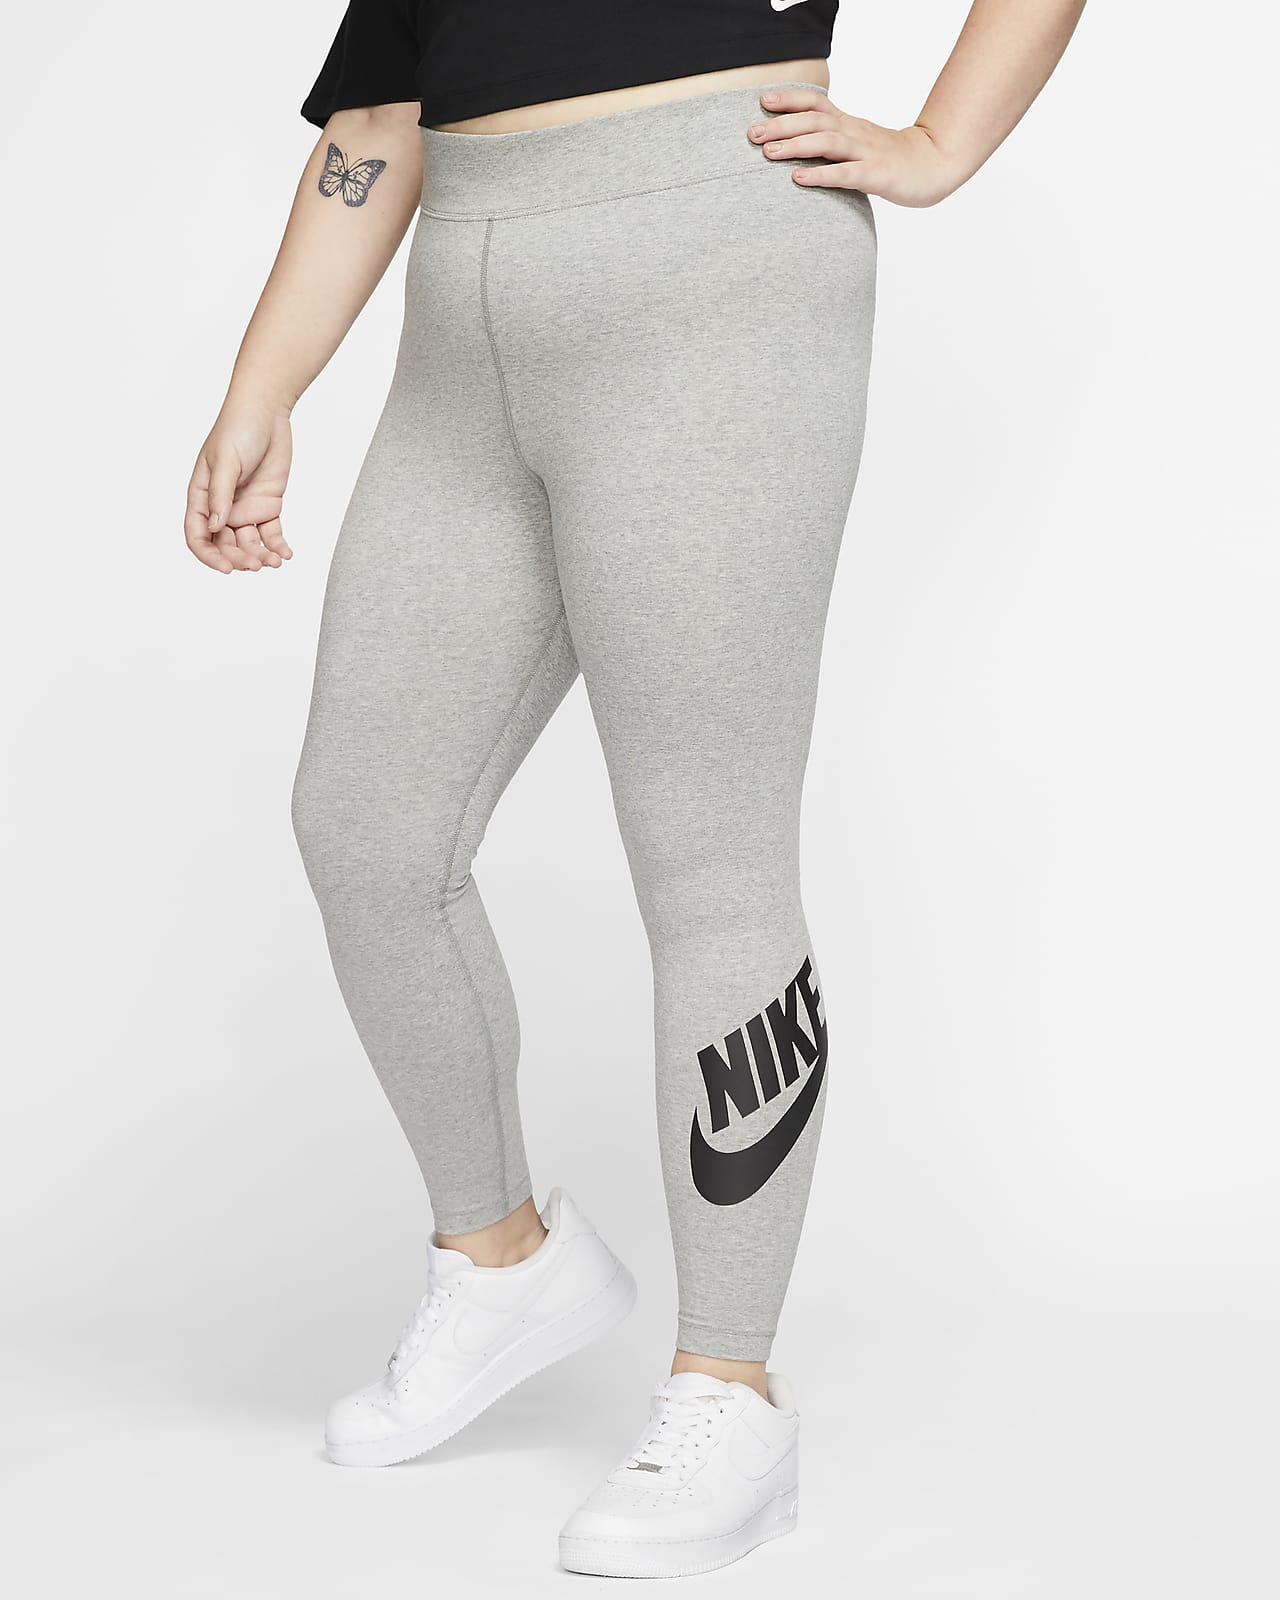 Nike Sportswear Leg-A-See Women's High-Rise Leggings (Plus Size)